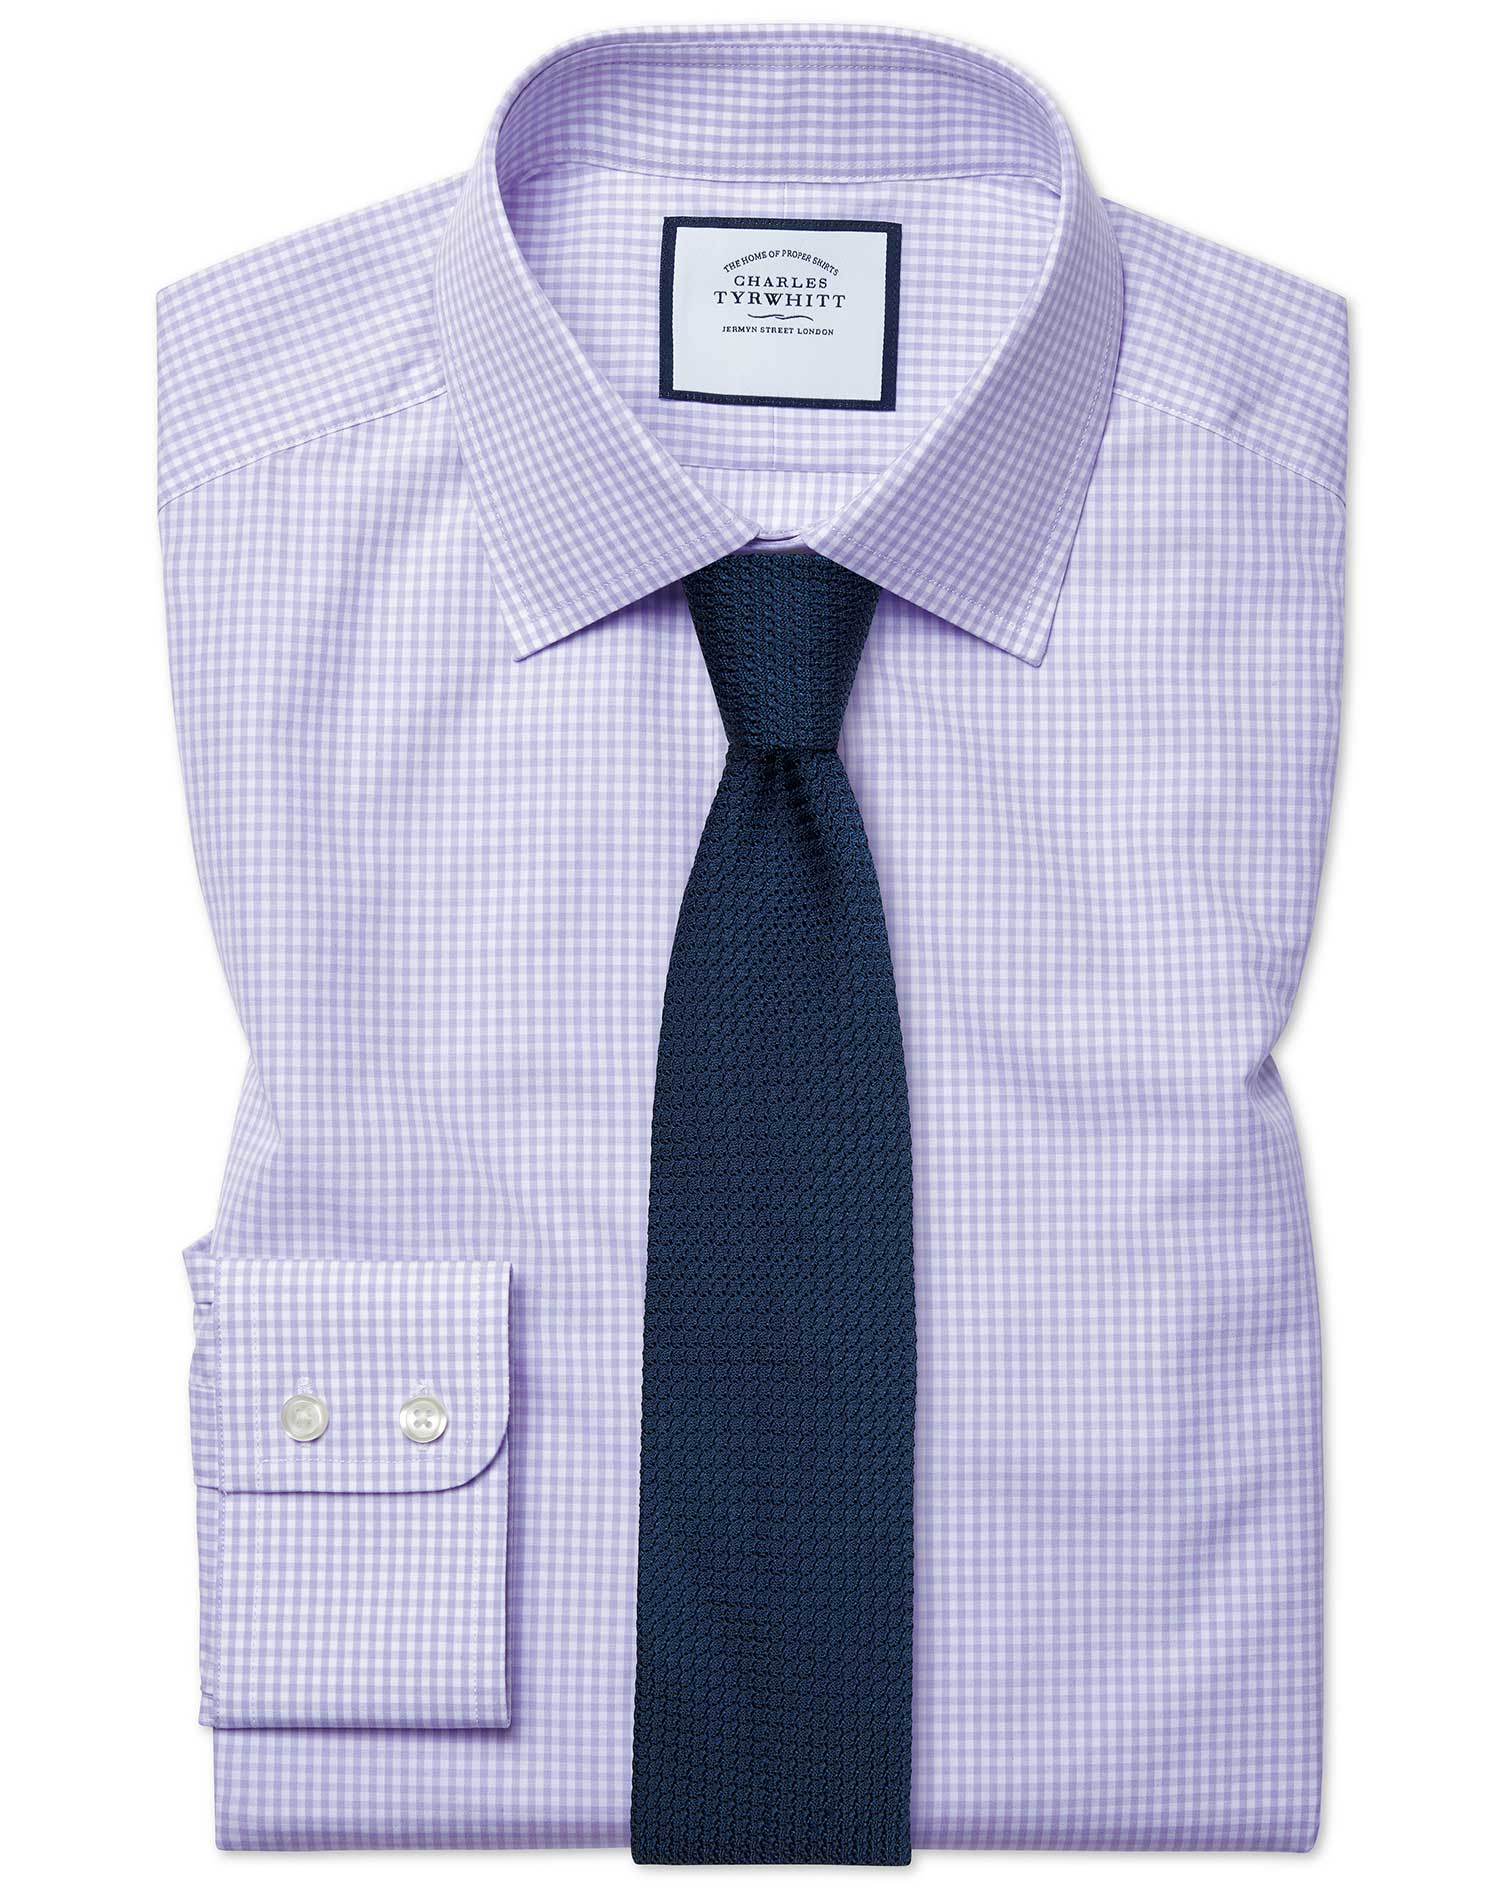 Slim Fit Small Gingham Lilac Cotton Formal Shirt Double Cuff Size 17.5/34 by Charles Tyrwhitt